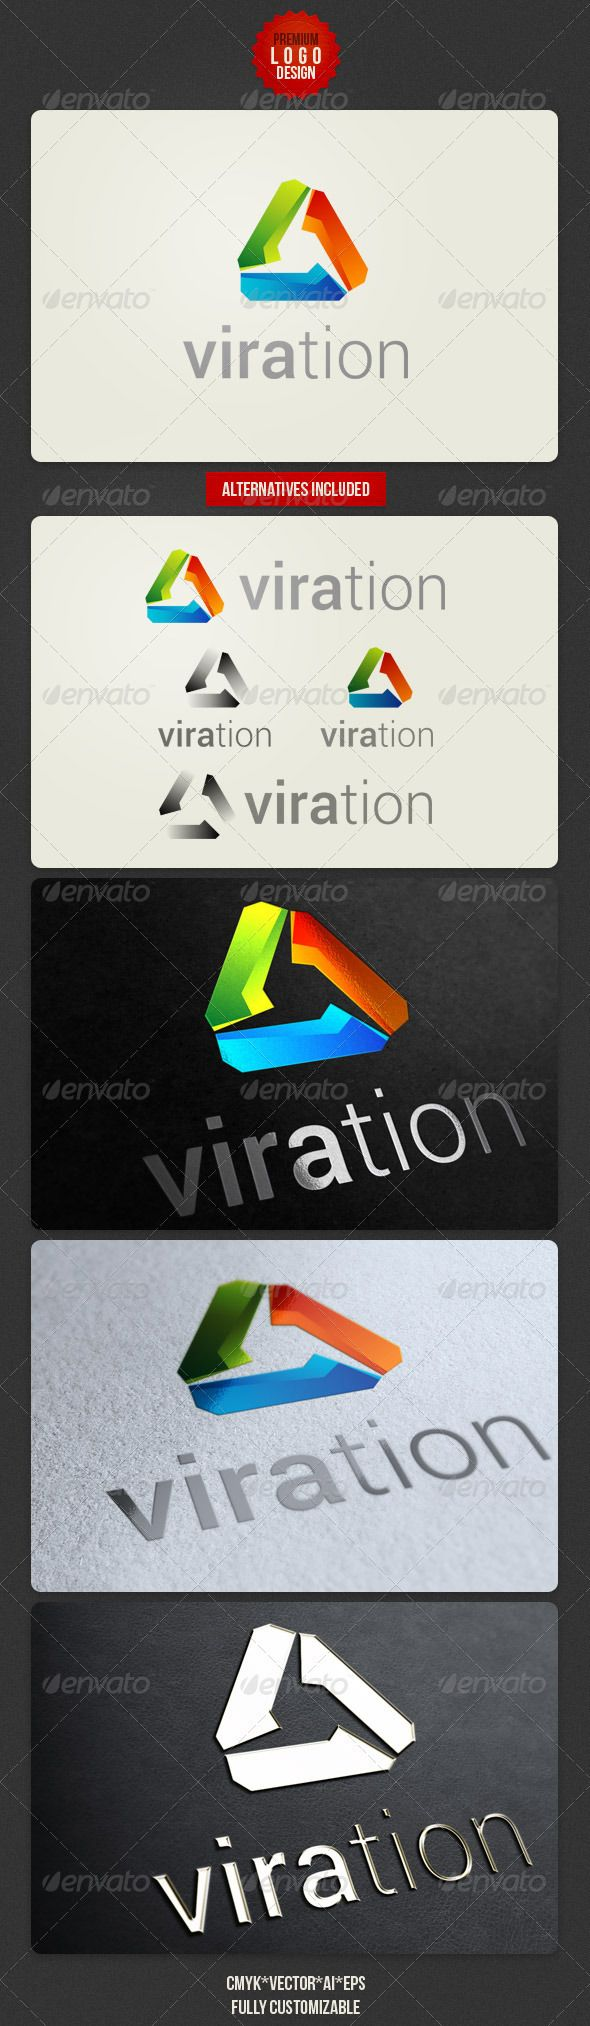 Viration Clean Logo Design  #GraphicRiver         Clean and technology vector logo template for your project.  	 CMYK , Adobe Illustrator AI file, EPS file, transparent PNG file.  	 Free font: Roboto –  .fontsquirrel /fonts/roboto  	 Enjoy      Created: 19June12 GraphicsFilesIncluded: TransparentPNG #VectorEPS #AIIllustrator Layered: Yes MinimumAdobeCSVersion: CS Resolution: Resizable Tags: brand #branding #business #clean #corporate #creative #design #designer #futuristic #identity #logo…